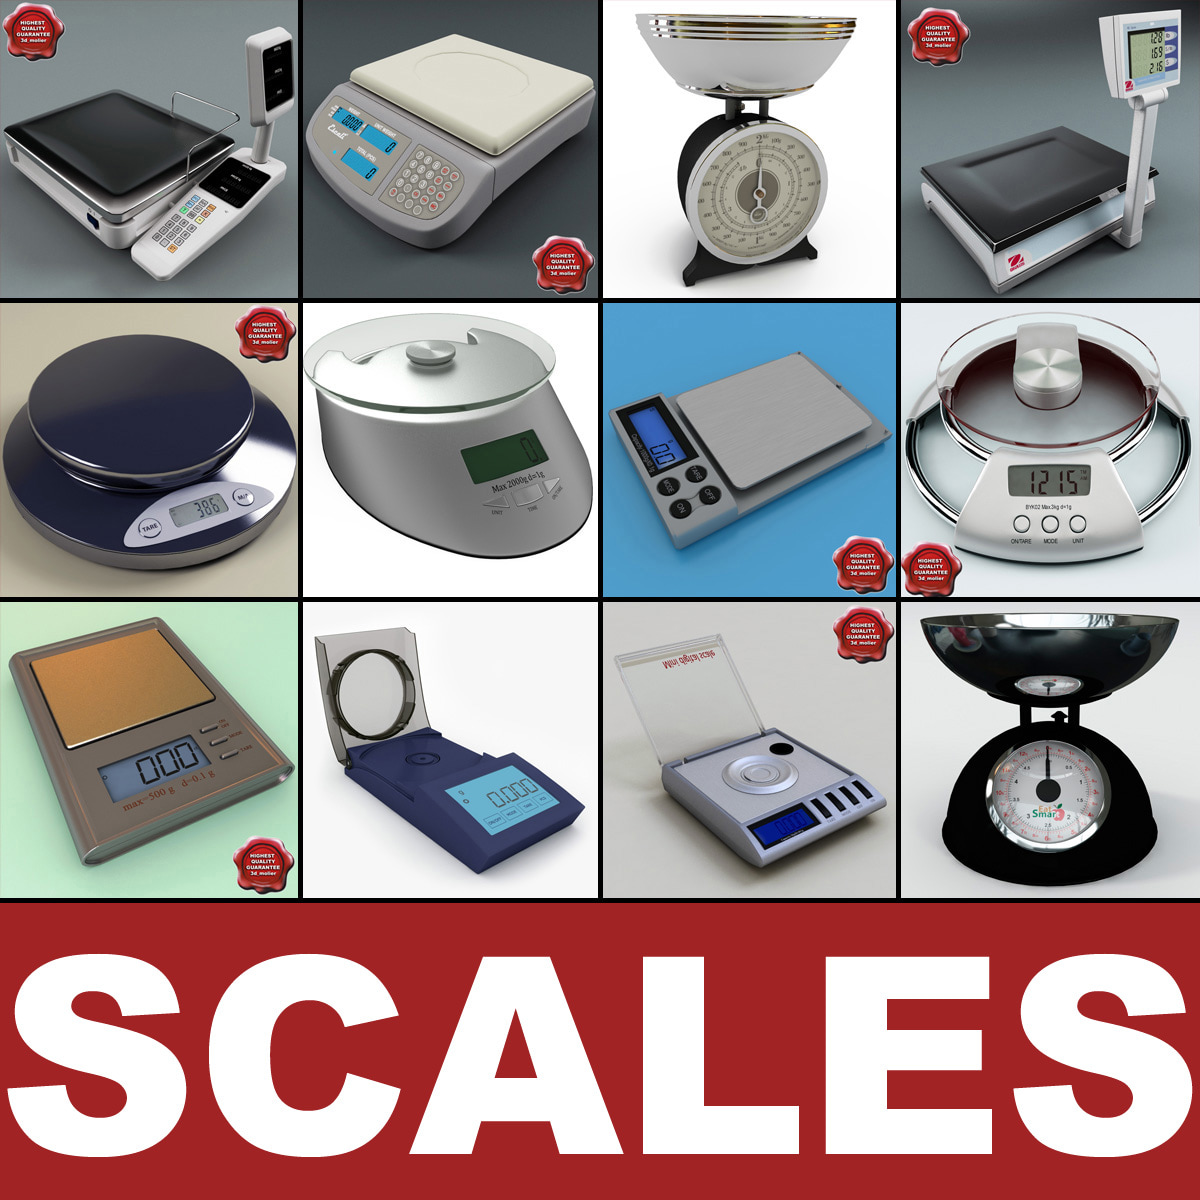 Scales_Big_Collection_V2_000.jpg